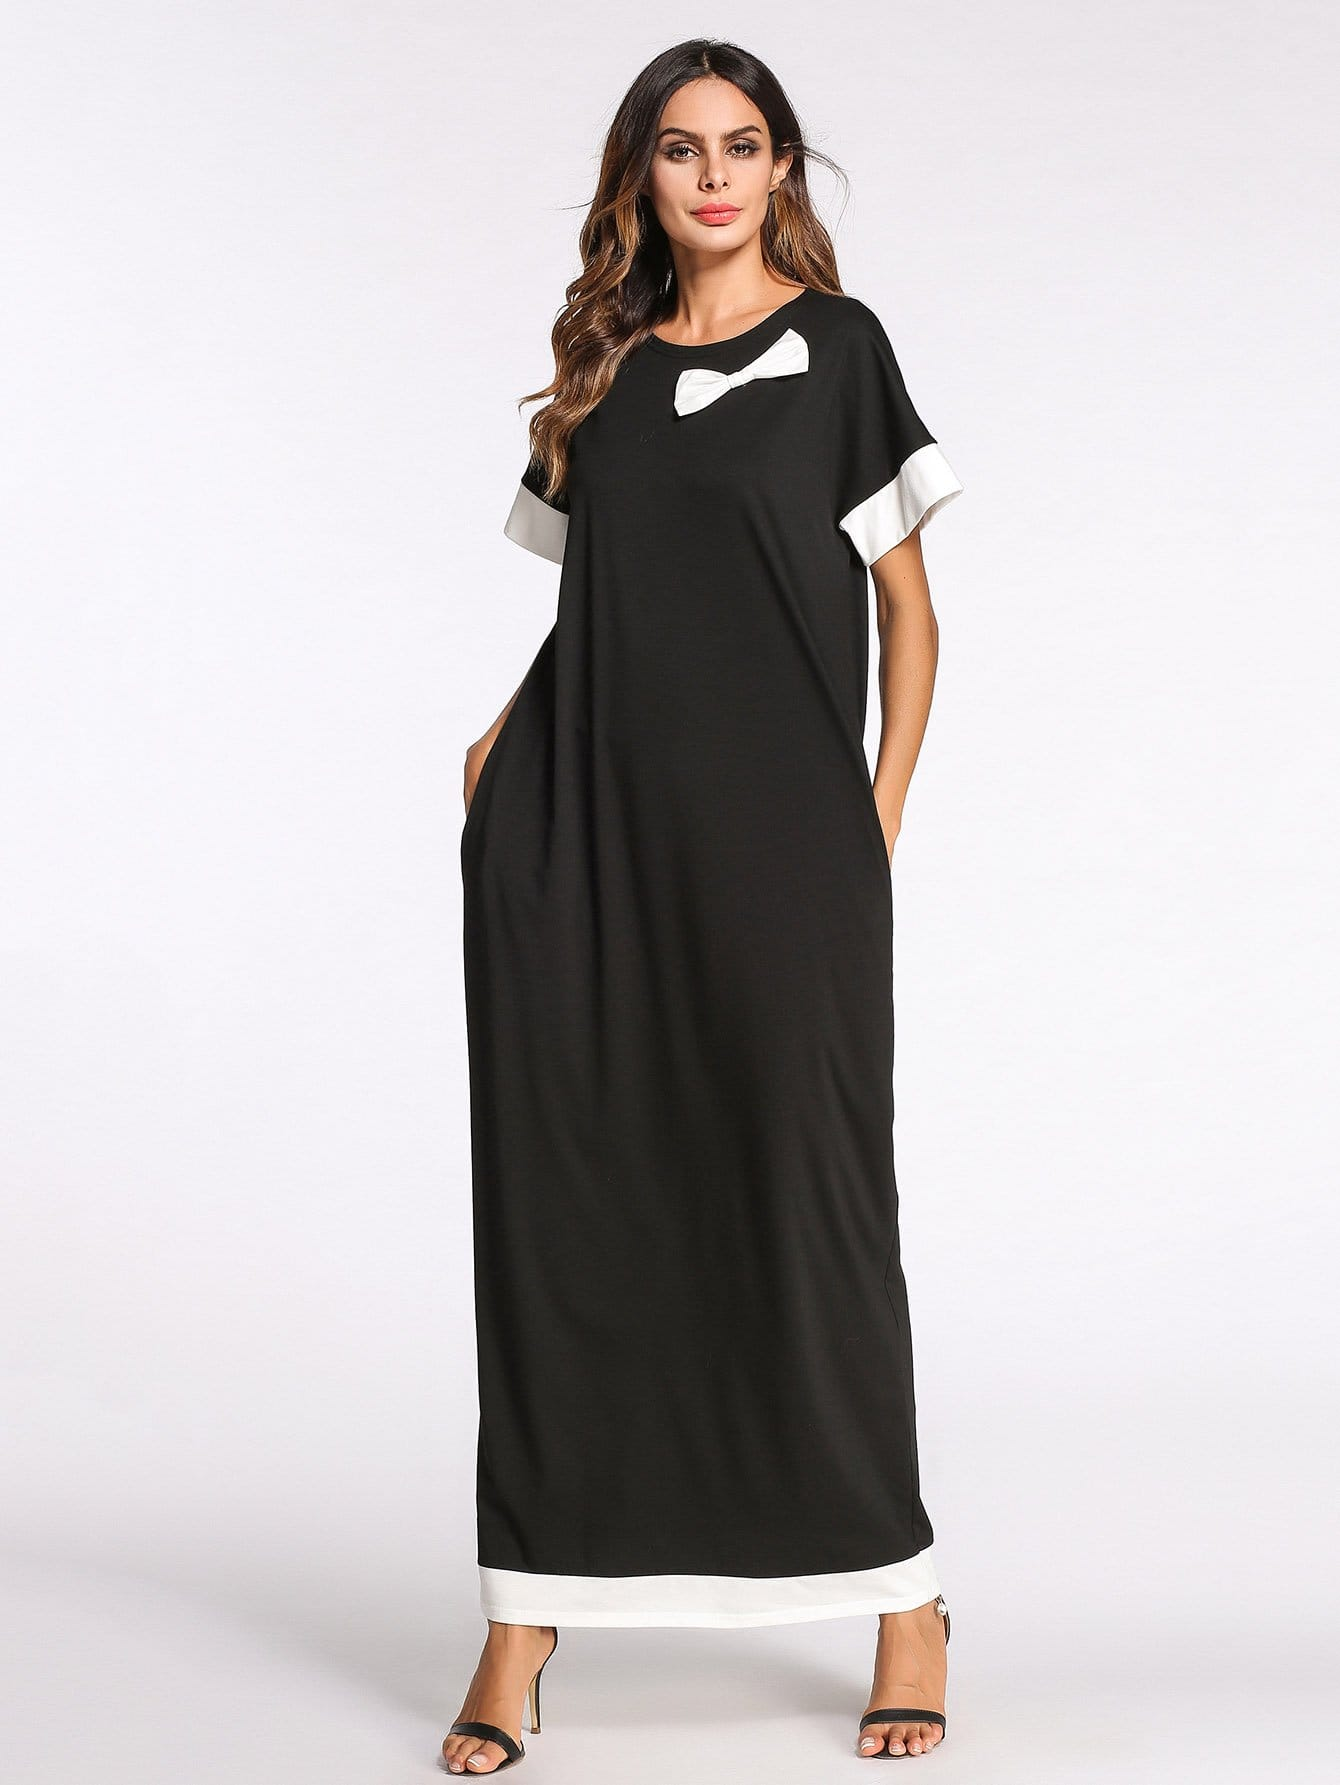 Bow Detail Block Stripe Contrast Longline Dress bow detail longline dress